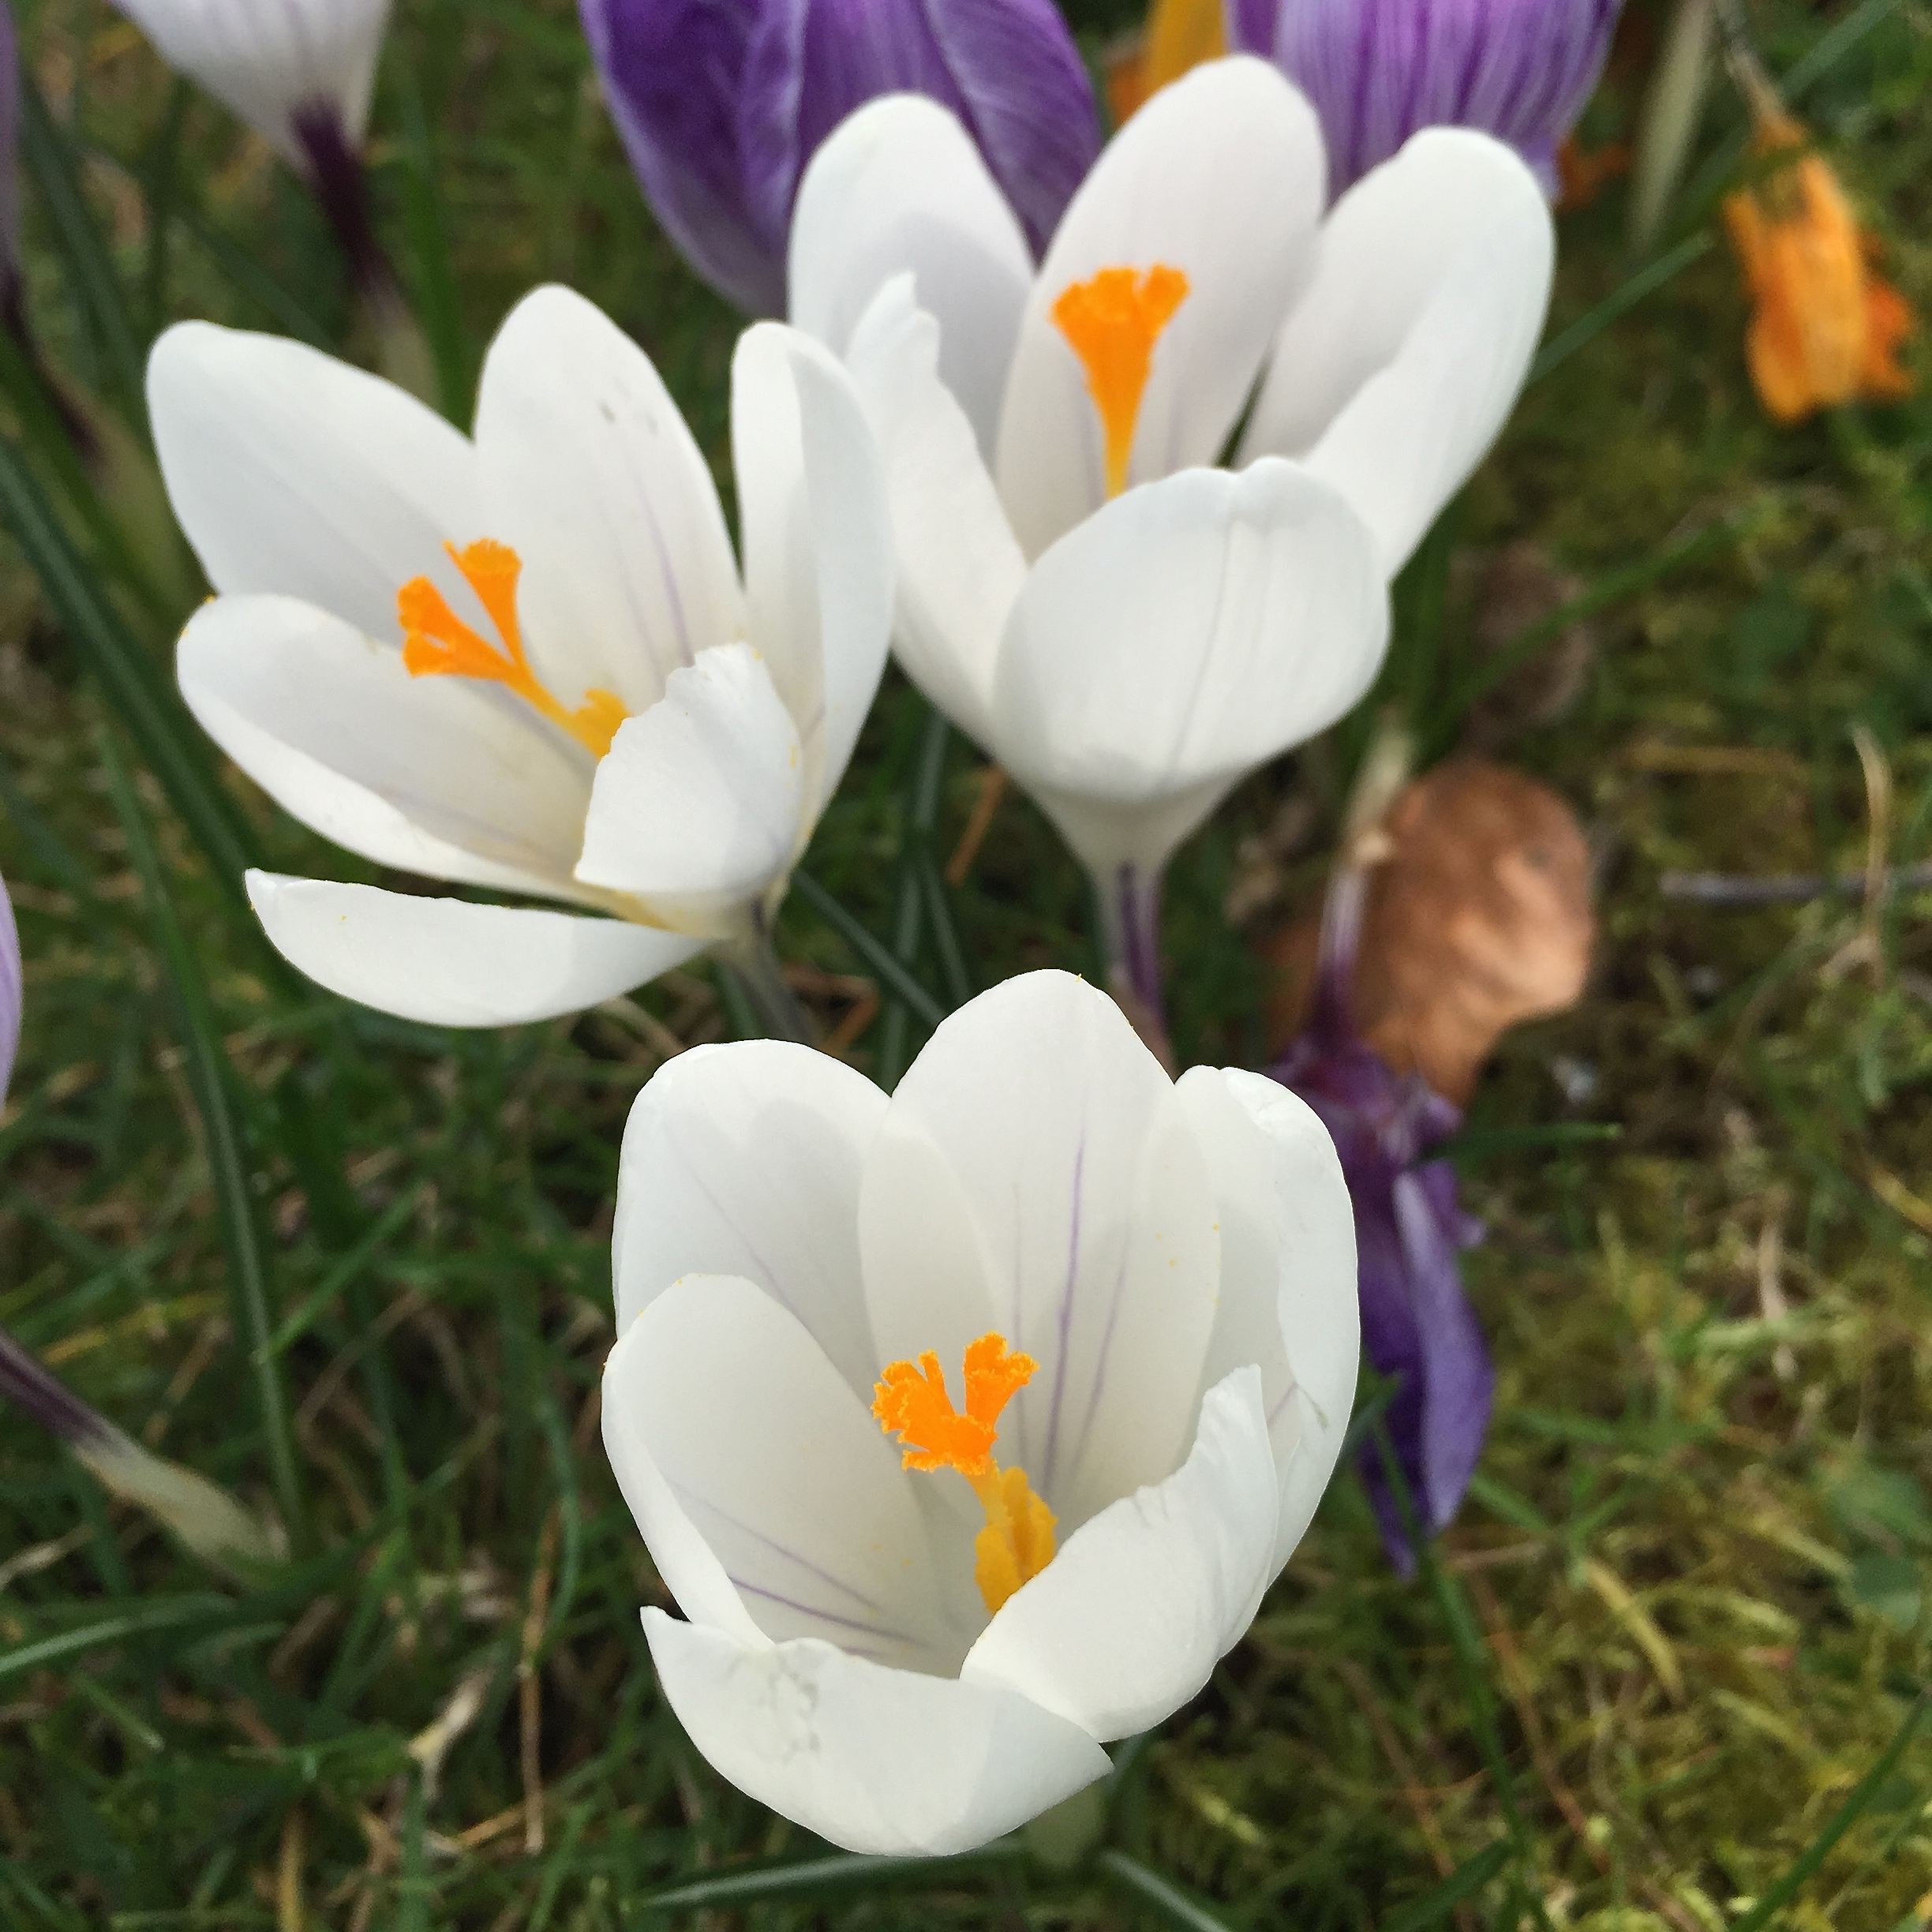 Daily flower candy dutch crocus crocus vernus the frustrated white dutch crocusstour row dorset march 2015 mightylinksfo